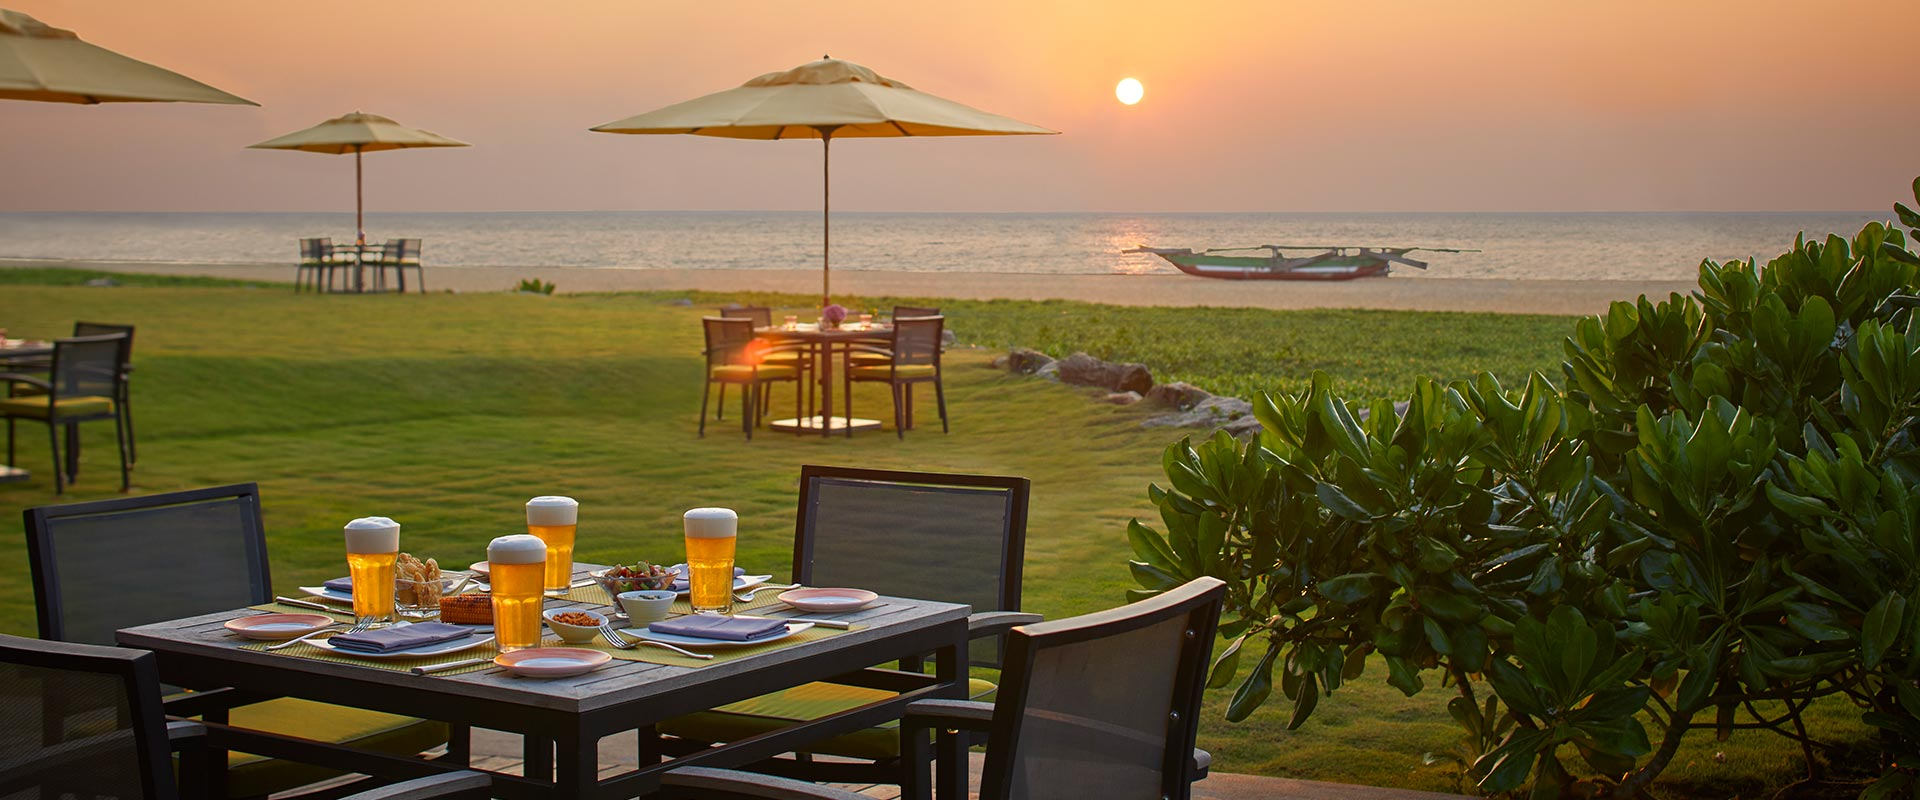 B-Bums Bar Outdoor Dining with a sunset view at Heritance Negombo